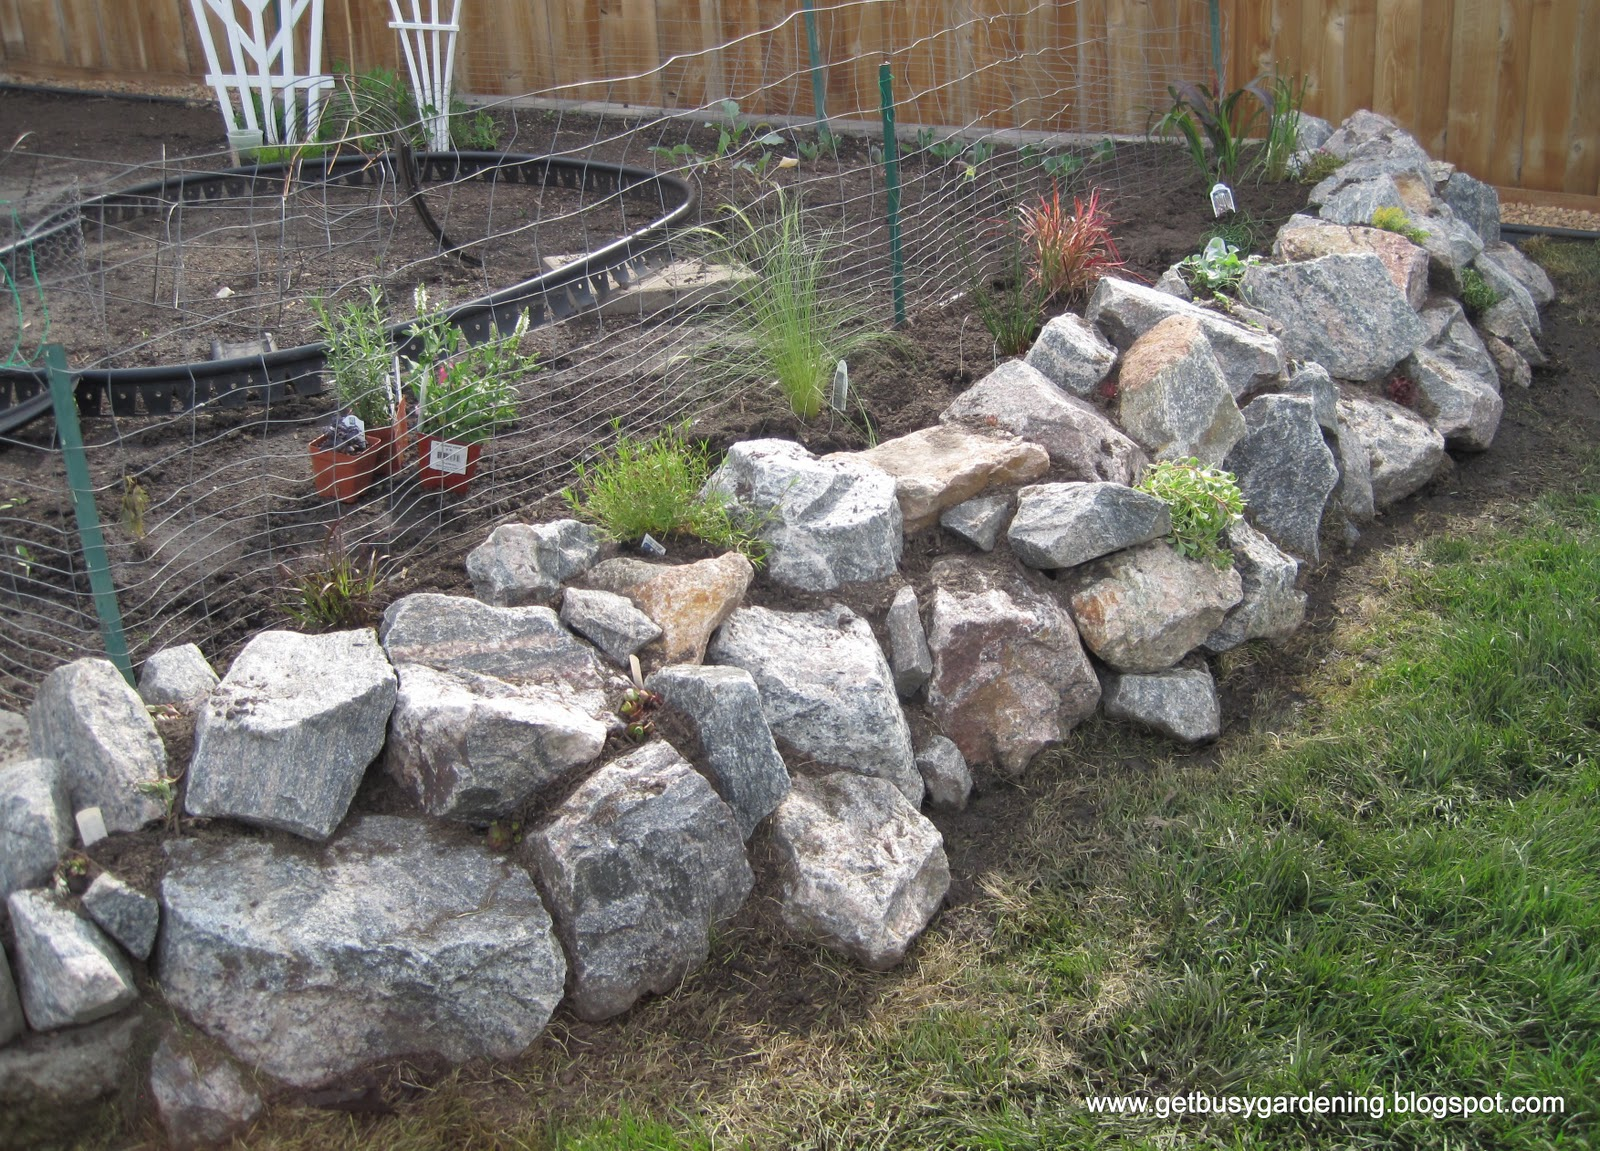 Genial Rock Wall Done And Planted